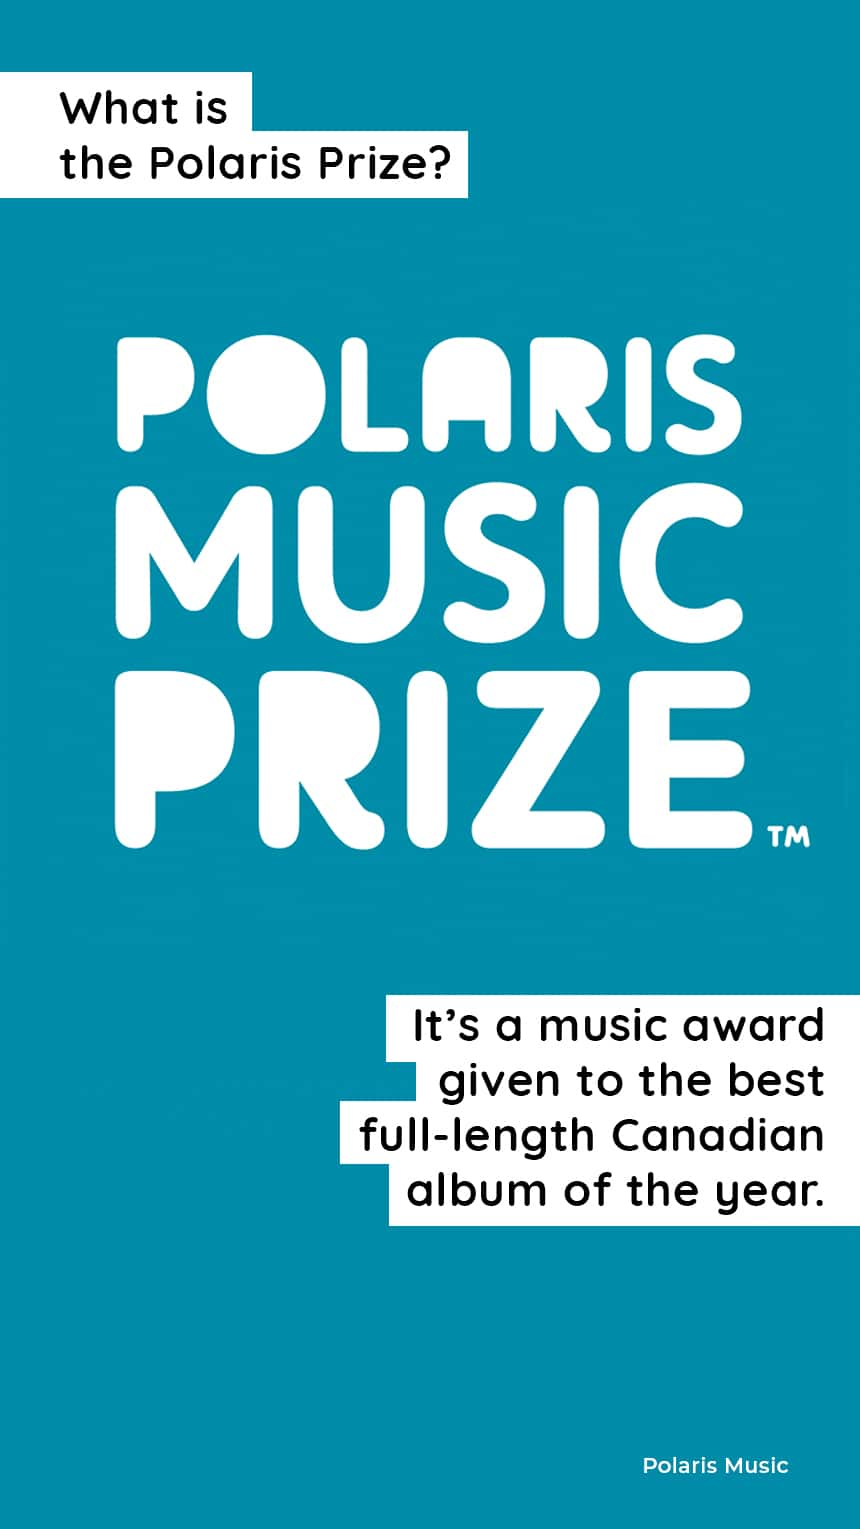 TEXT: What is the Polaris Prize? It's a music prize given to the best full-length Canadian album of the year.